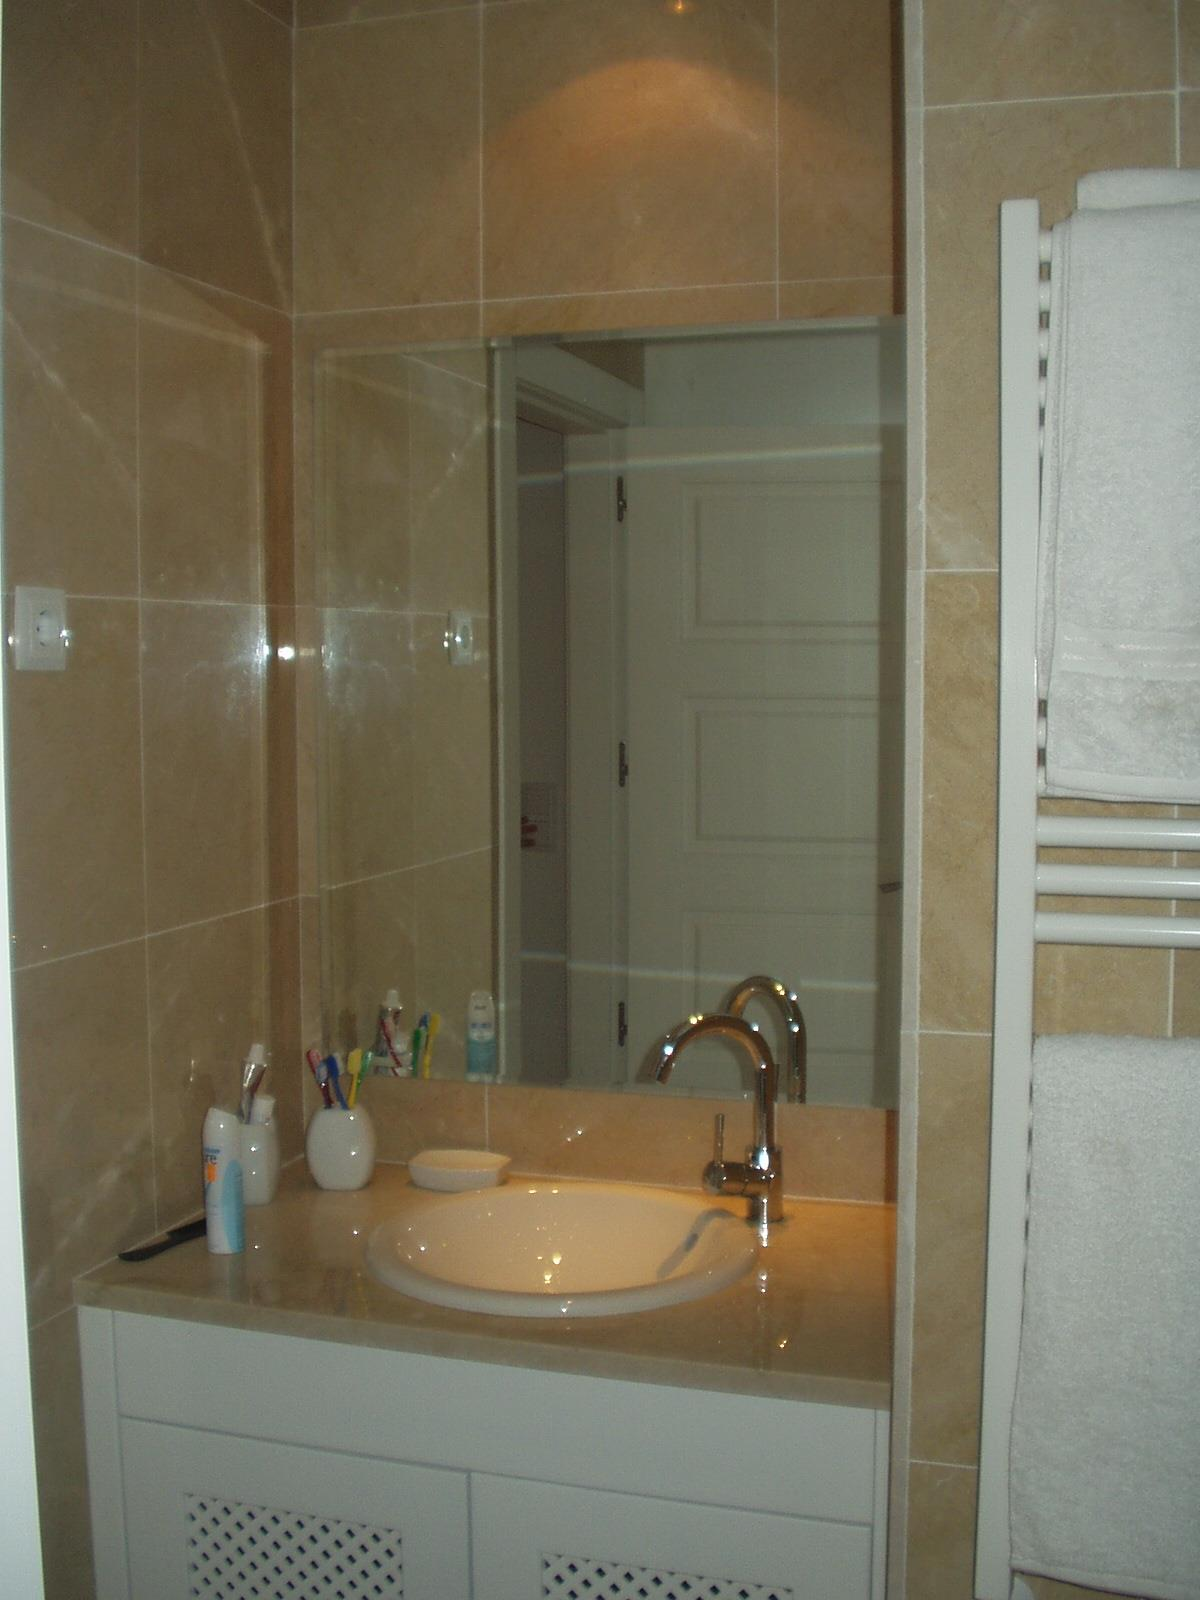 Shower / bathroom room